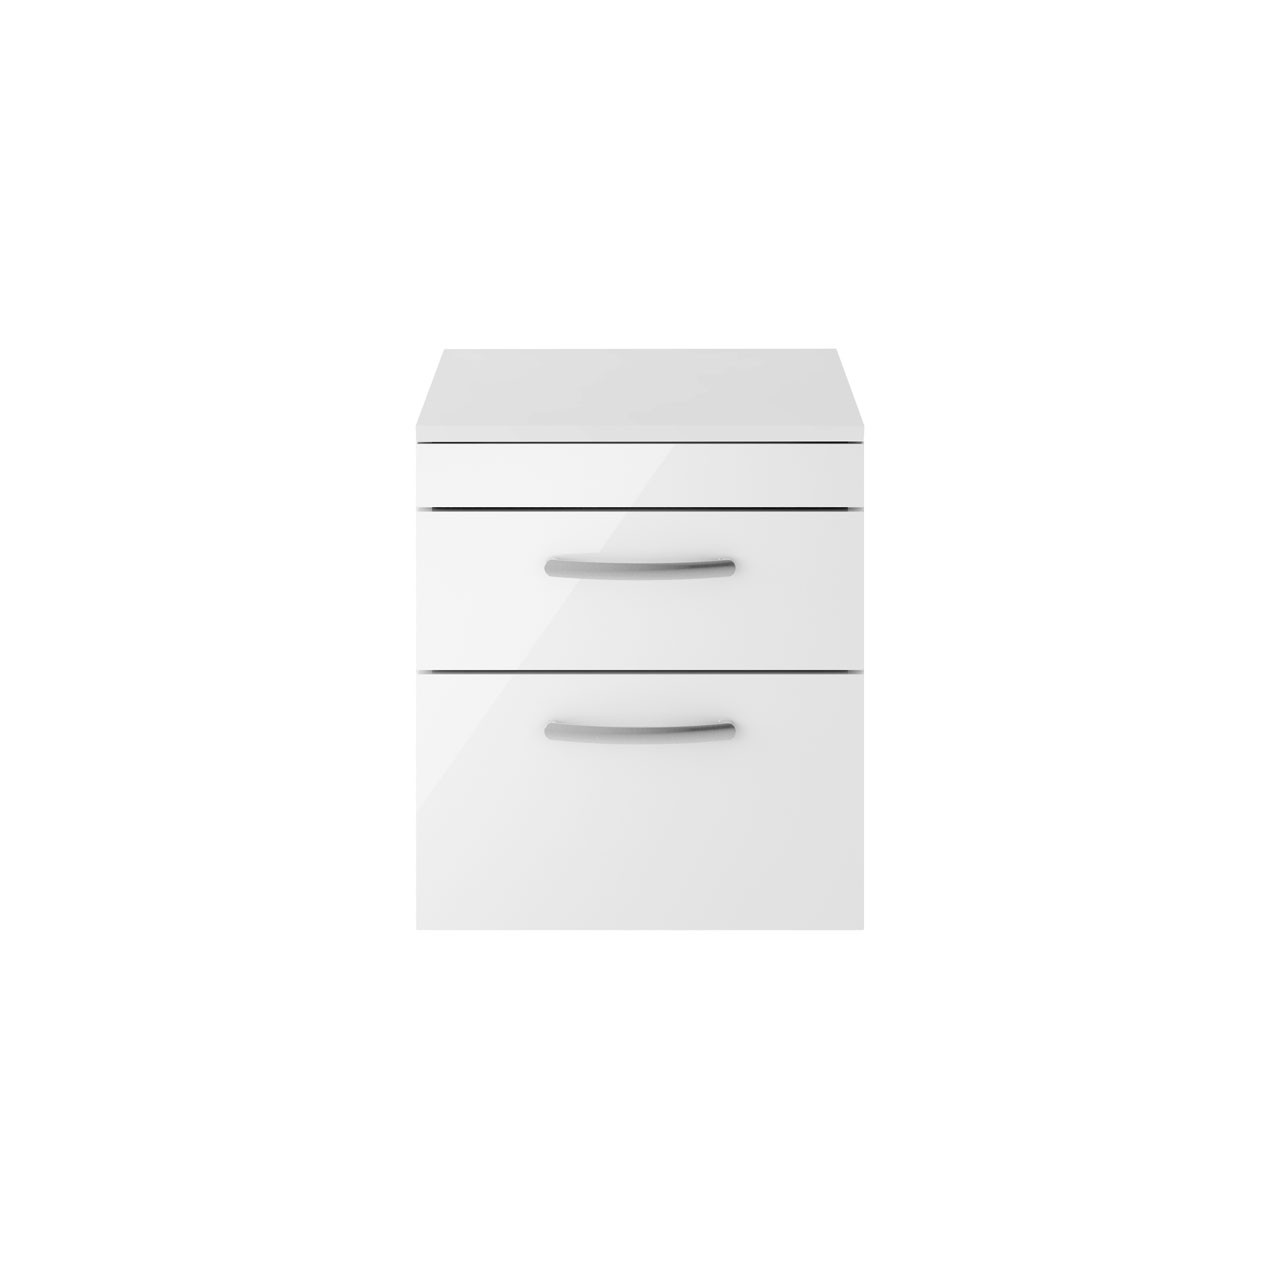 Premier Athena Gloss White 500mm Wall Hung 2 Drawer Vanity Unit with Worktop - ATH020W